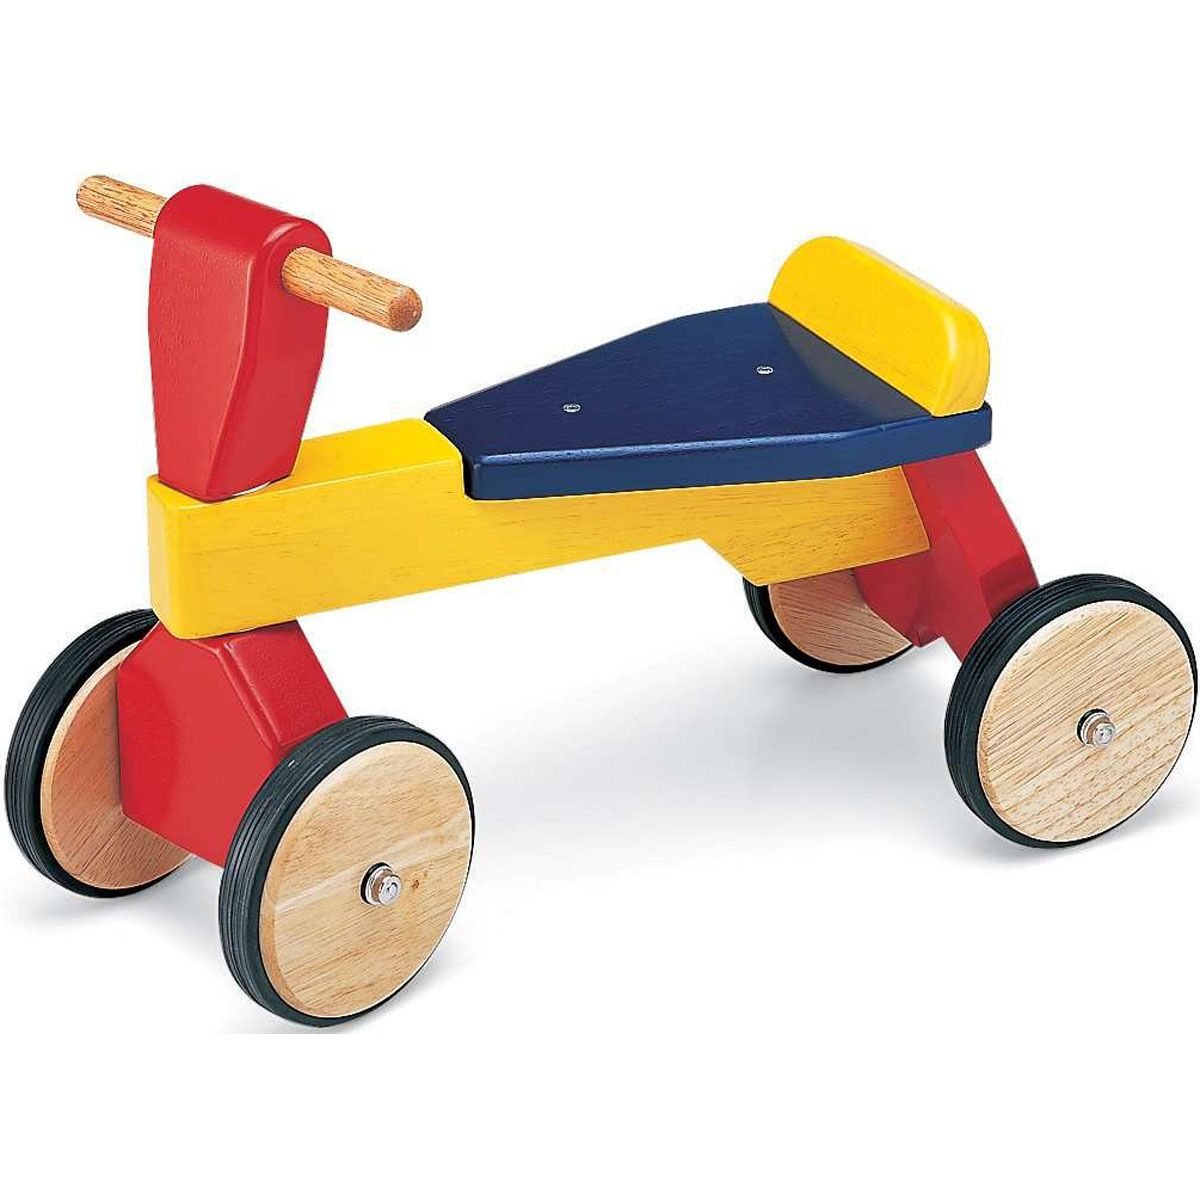 Wooden Toys For Toddlers And Kids : Wooden toys for children traditional childrens